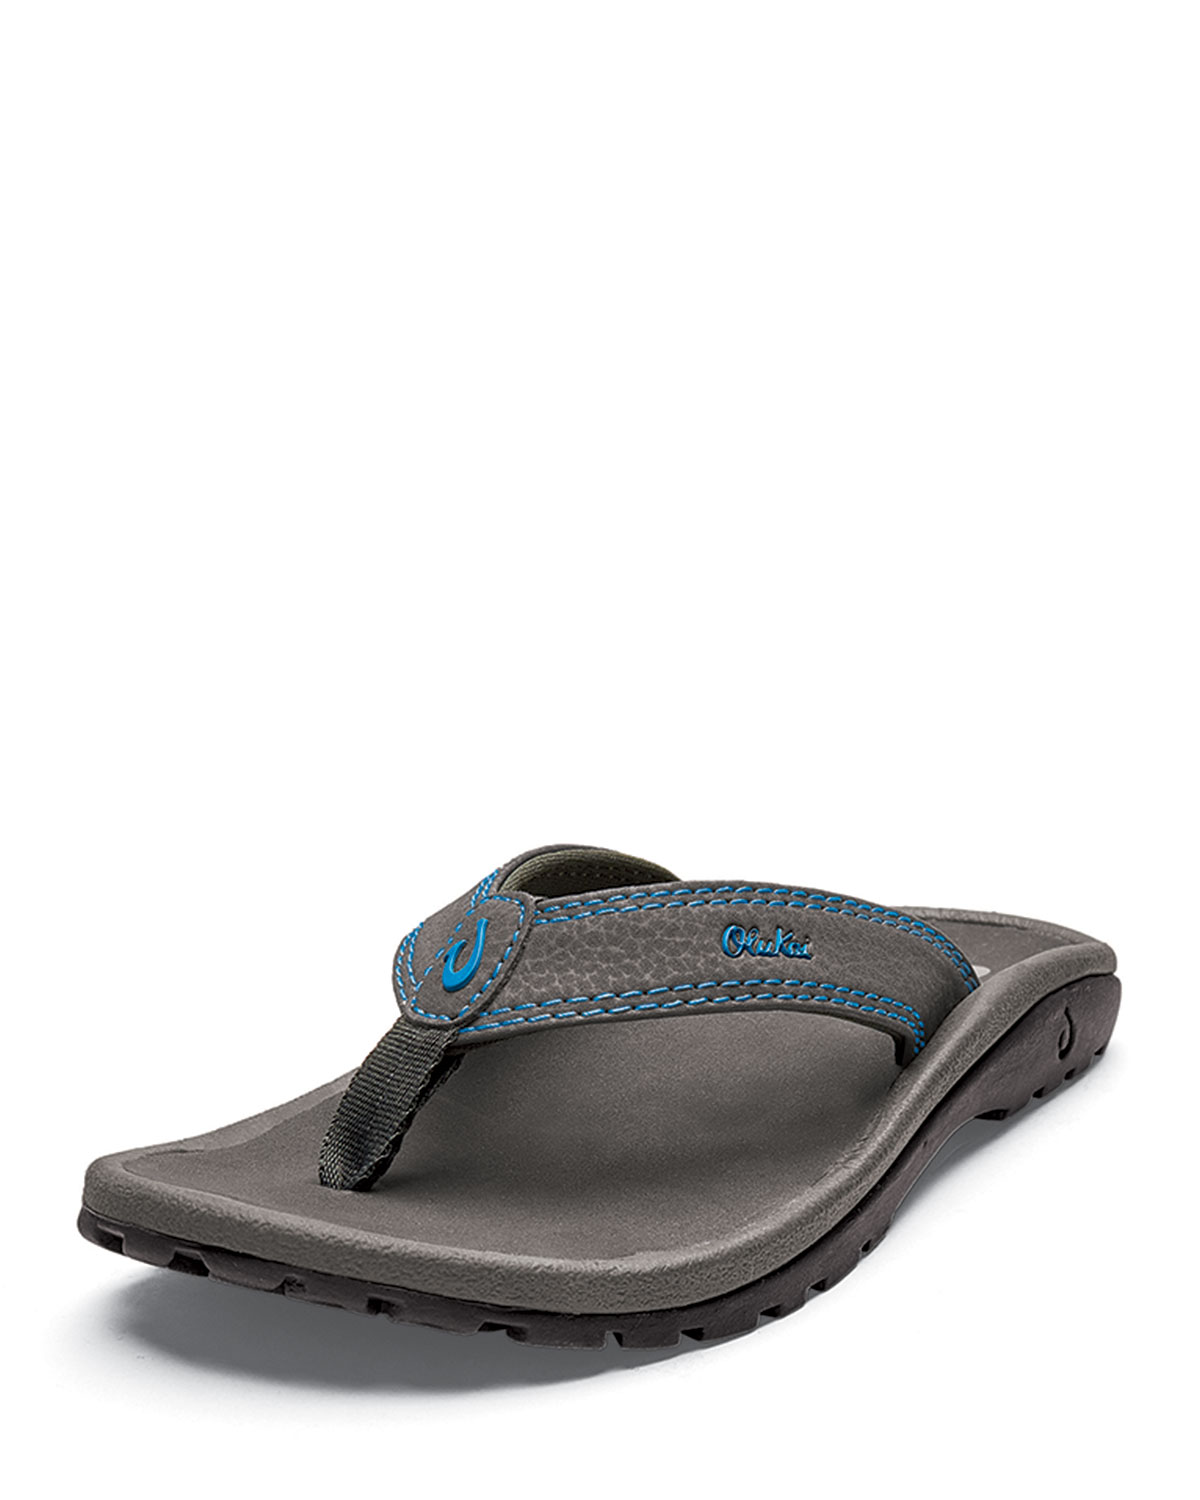 Boys Ohana SlipOn Sandals Baby